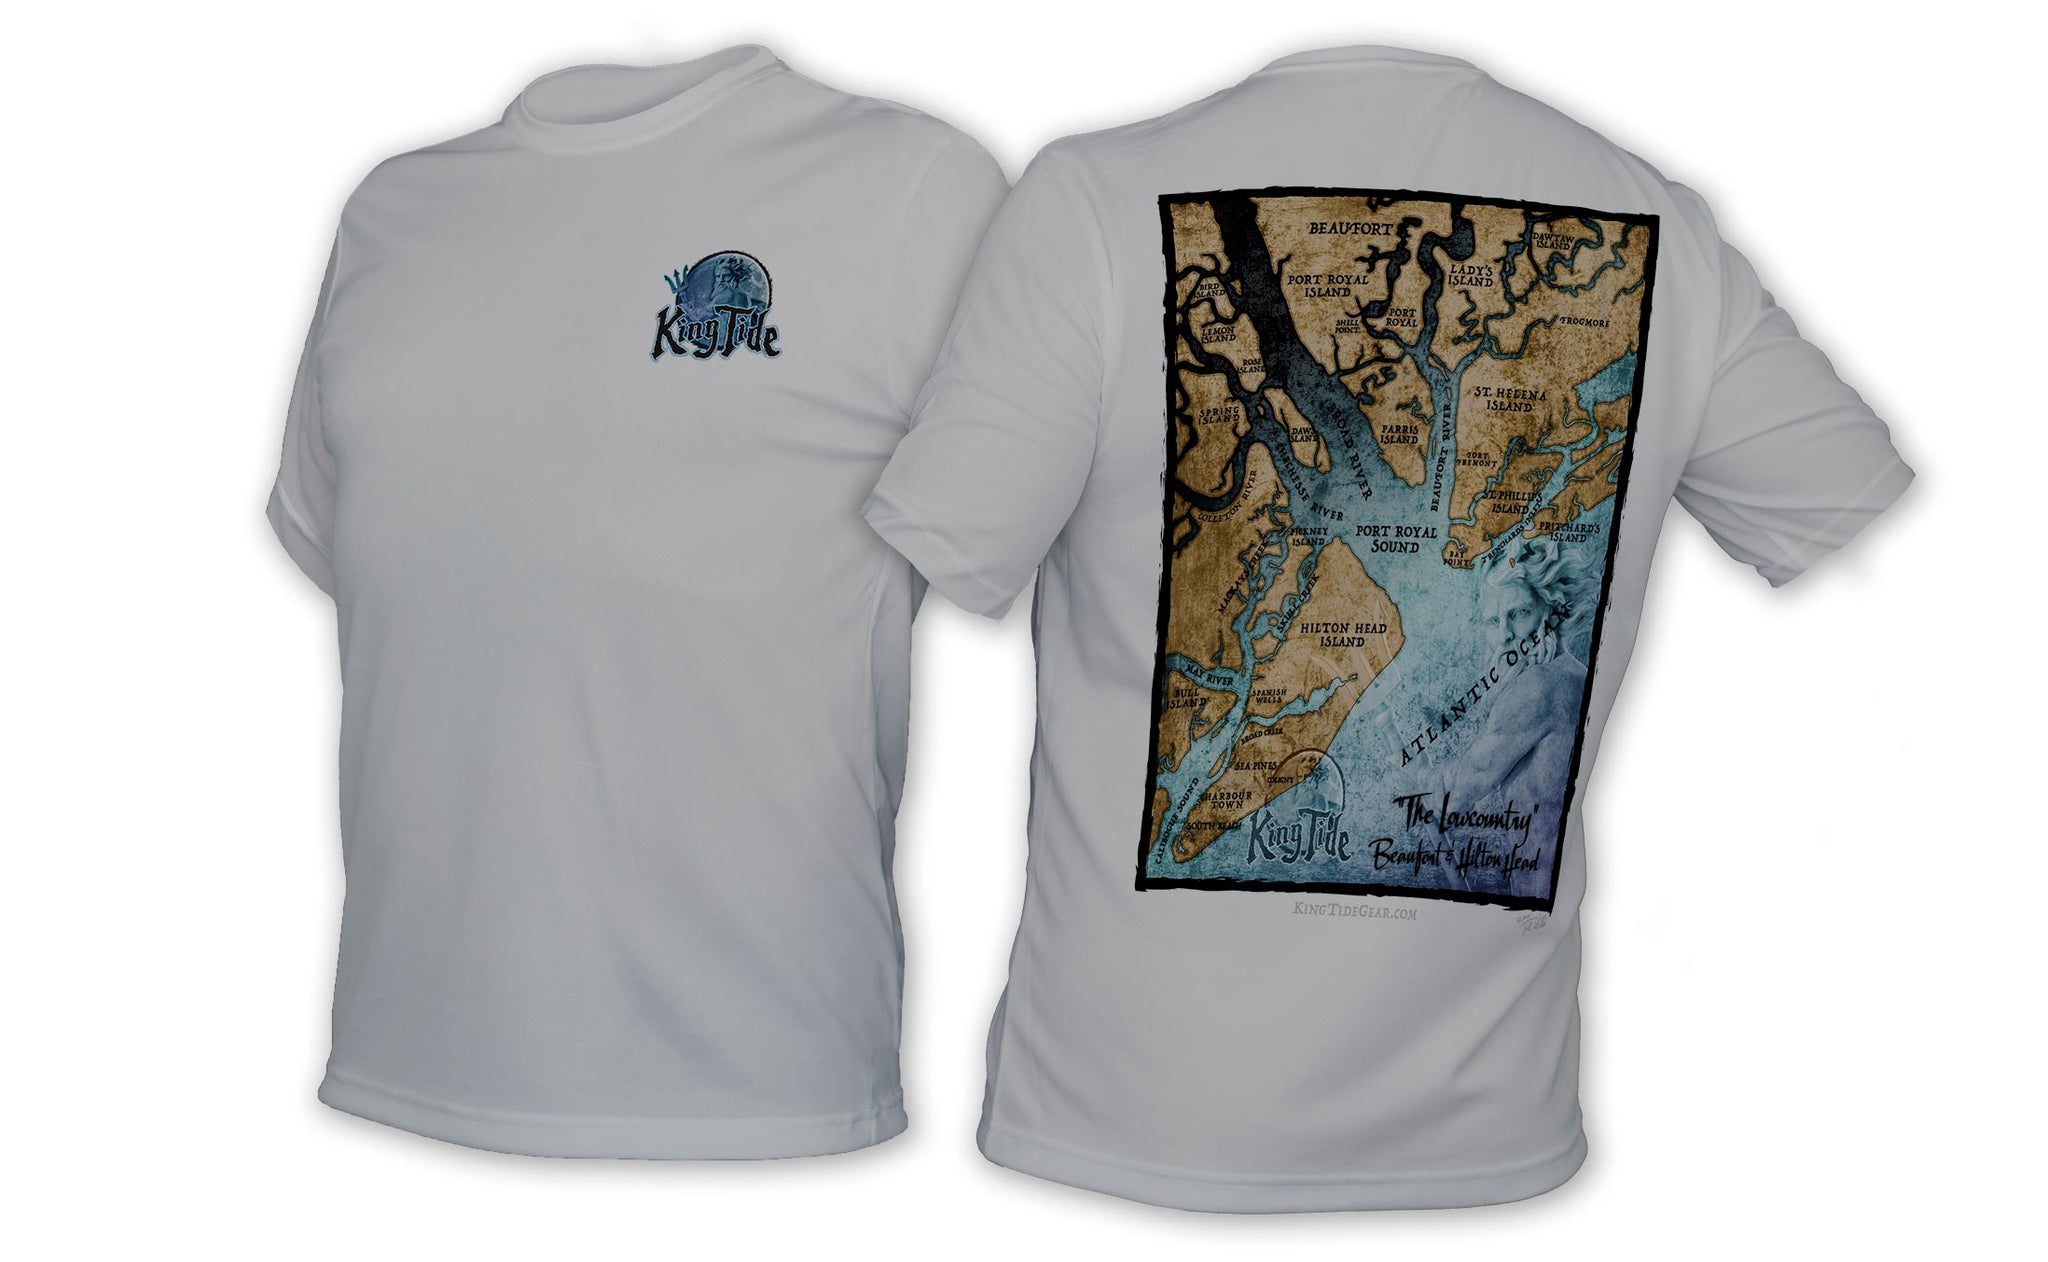 King Tide Hilton Head/Beaufort South Carolina SSChart Shirt